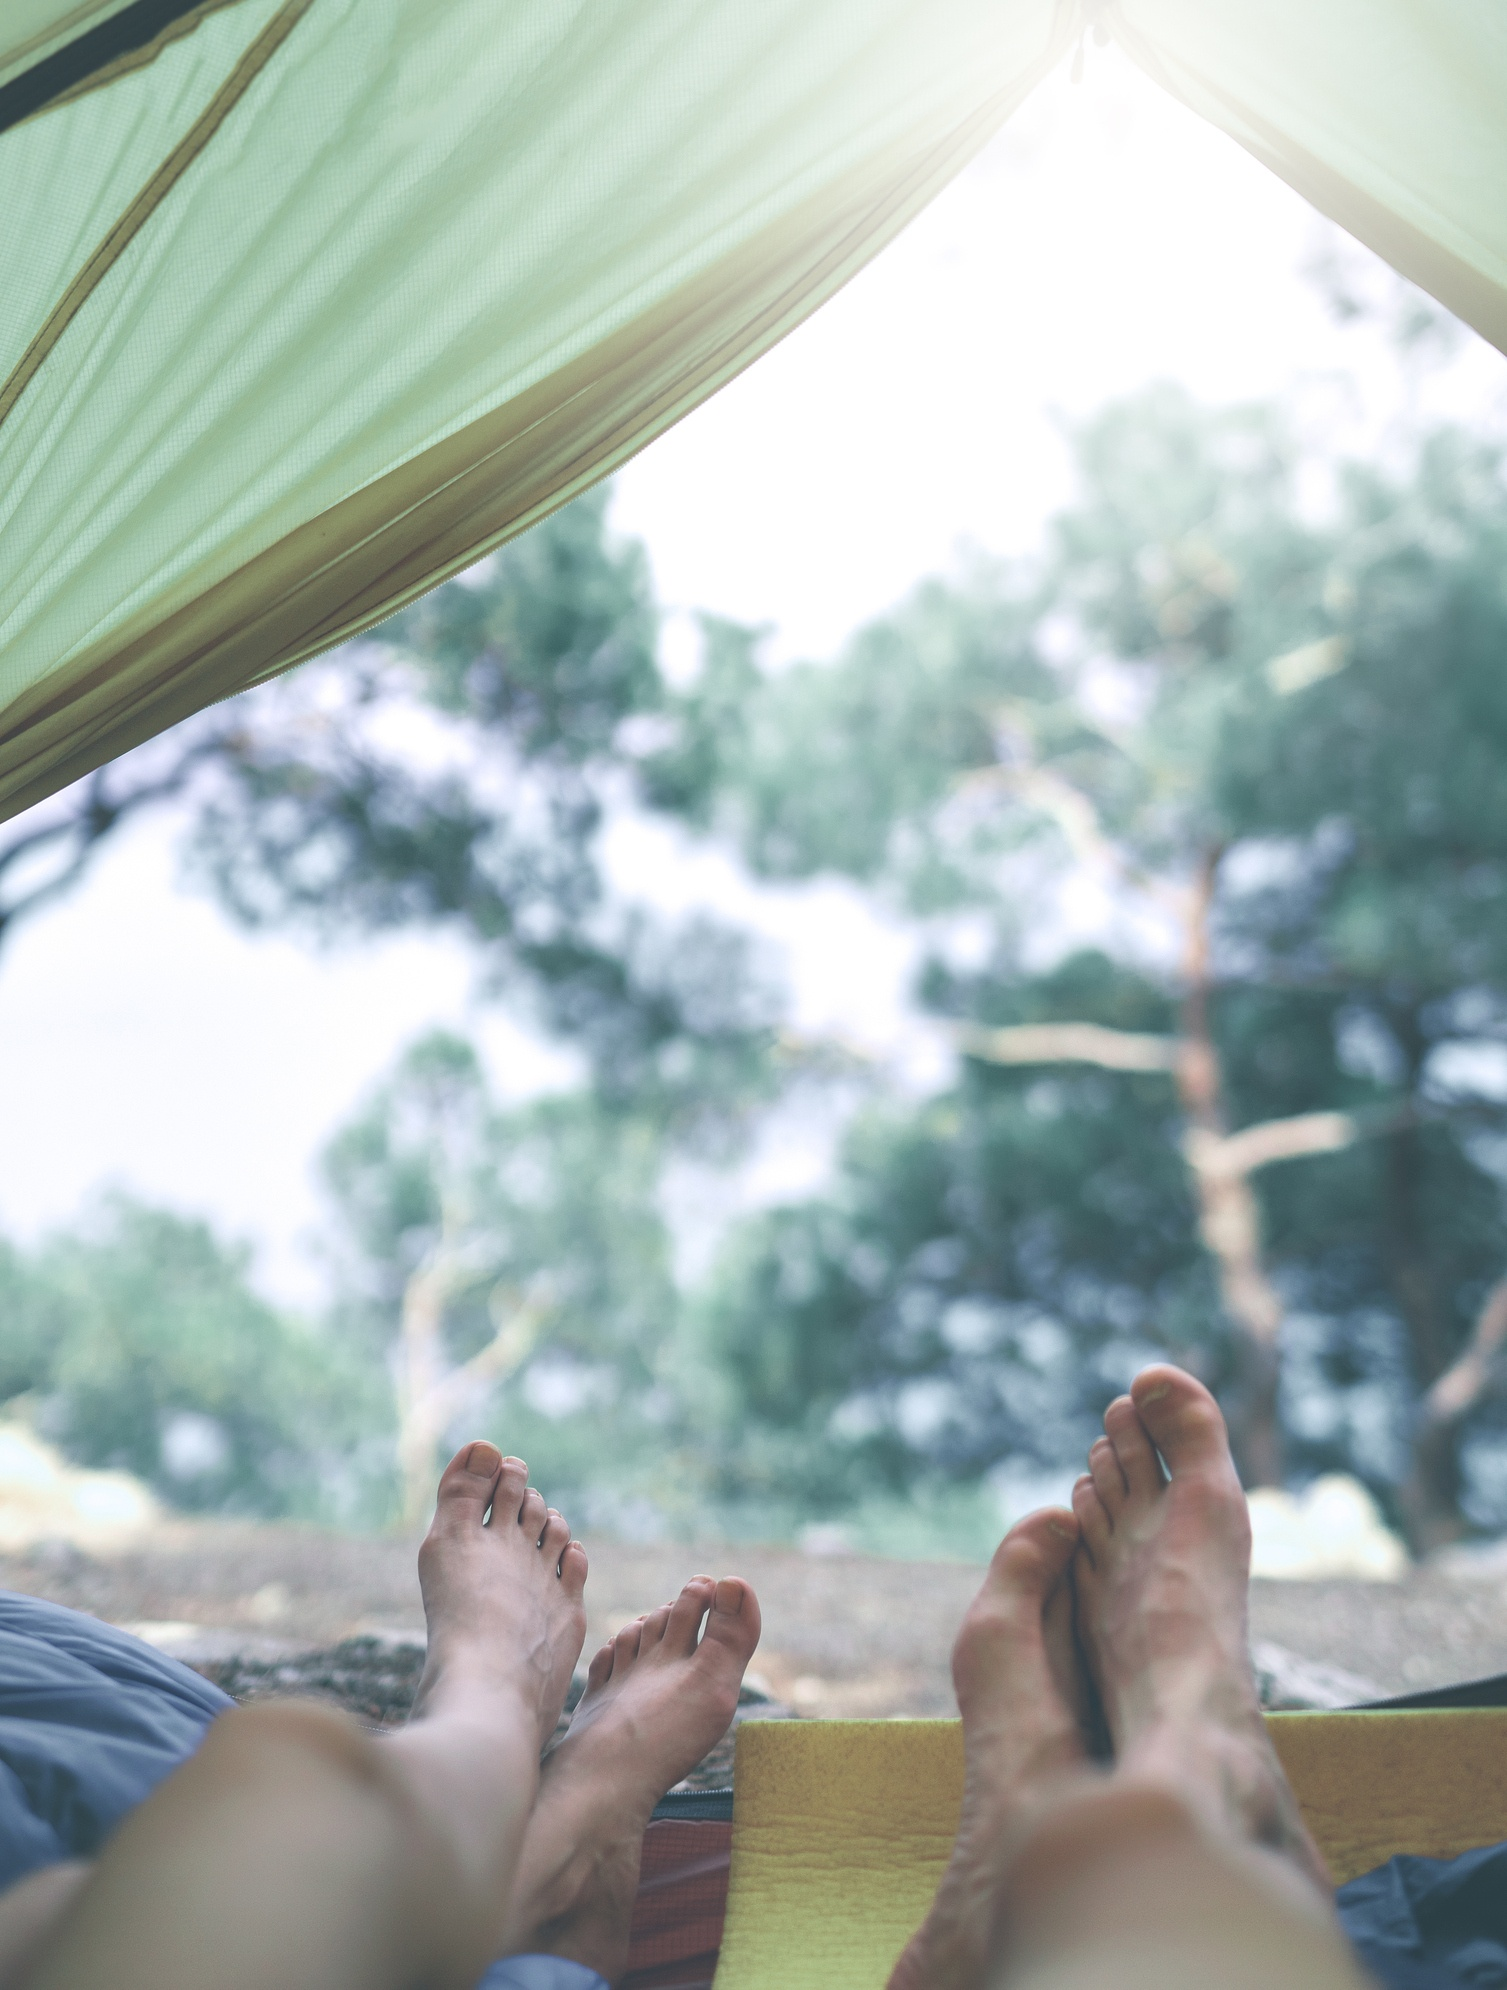 Couple viewing from inside a tent at the edge of a forest